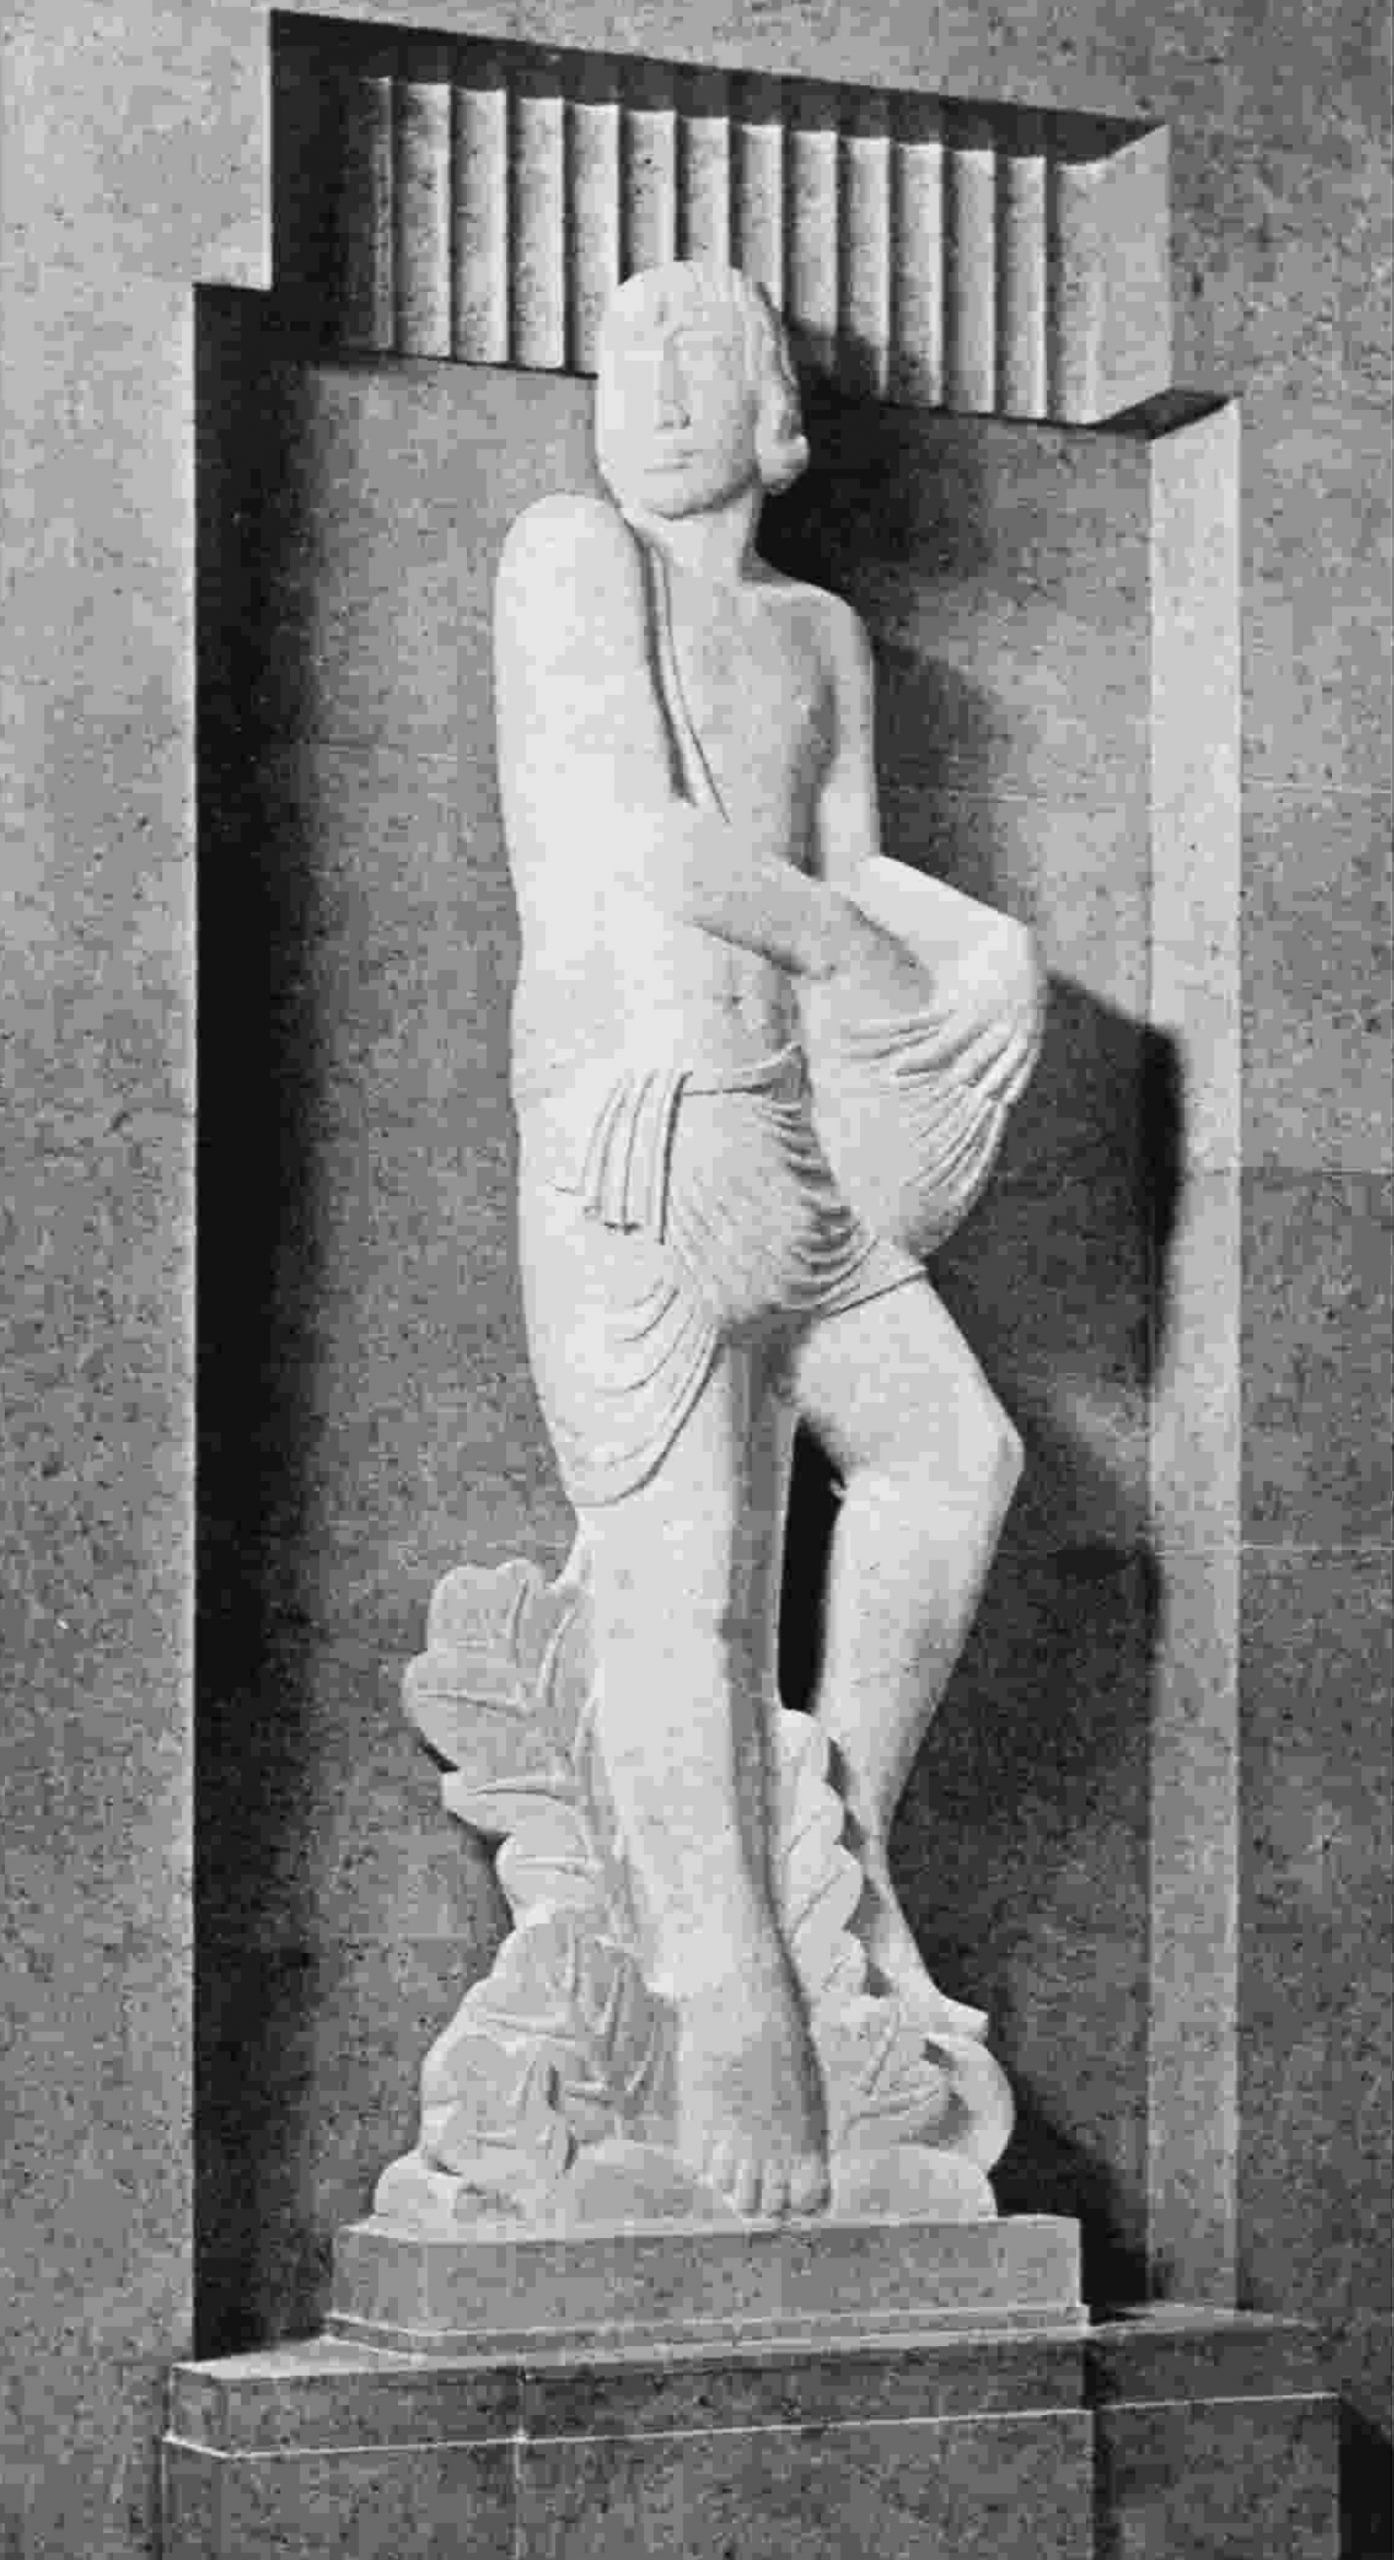 A stylised statue of a man sowing by broadcast